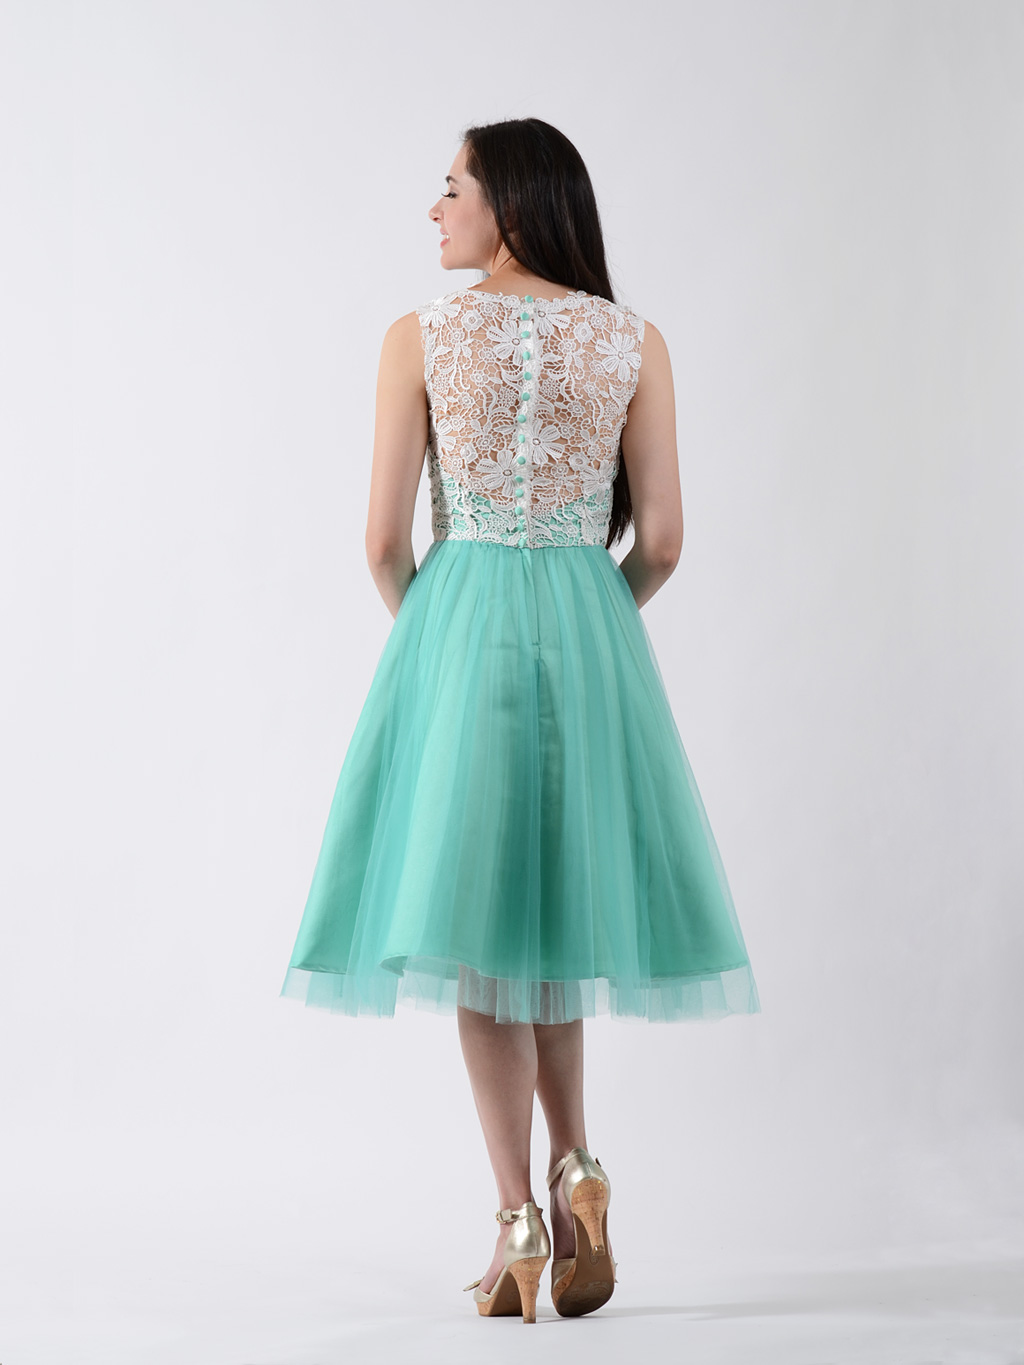 Lace bridesmaid dress emerald